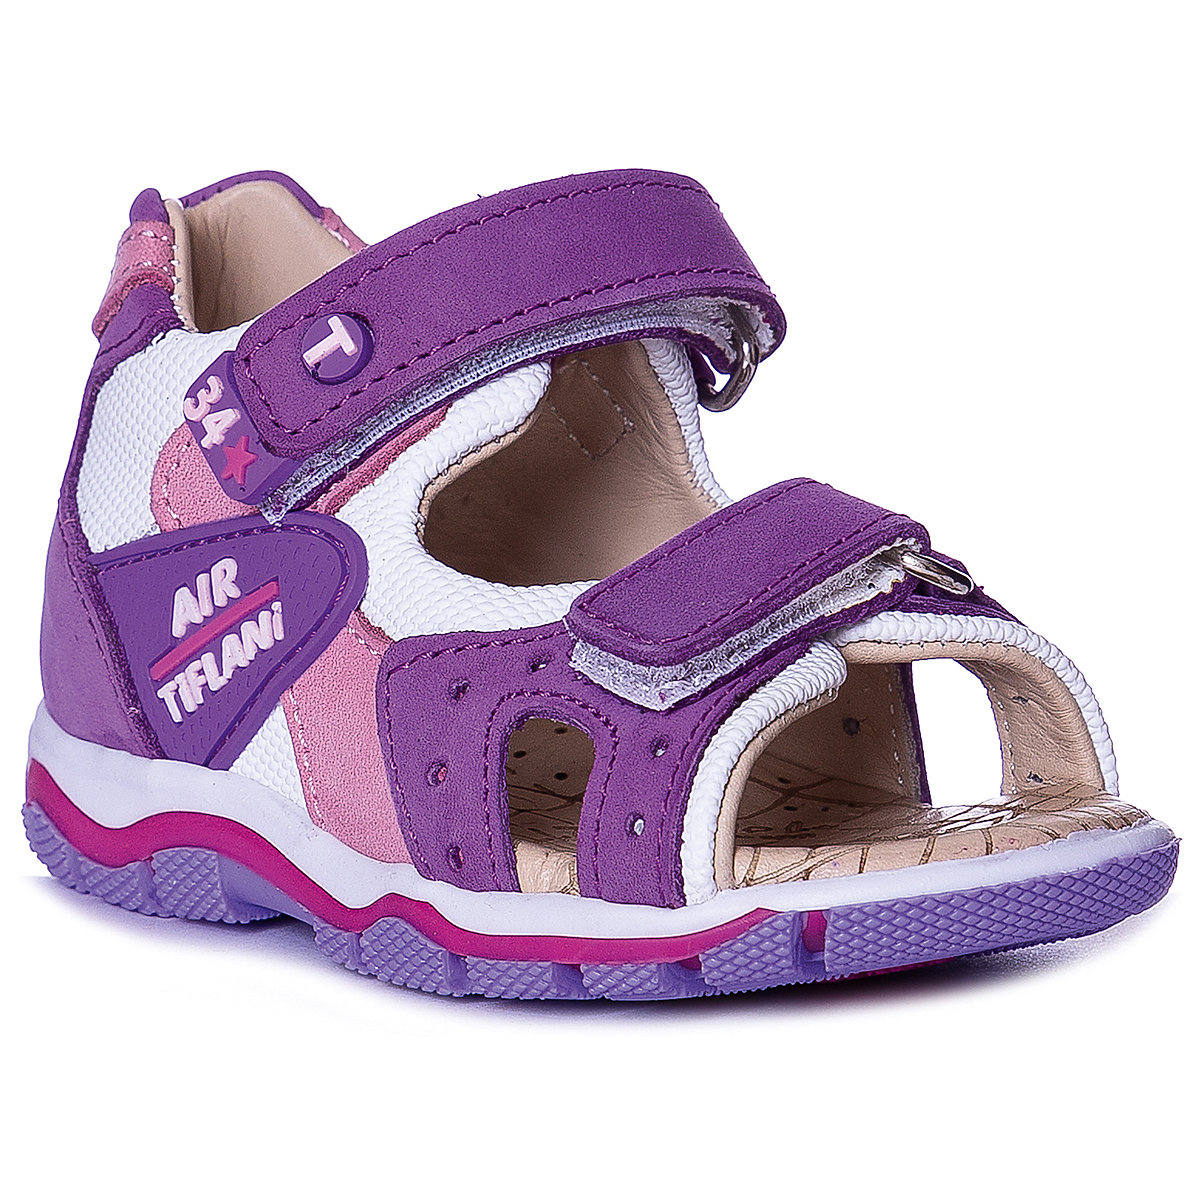 TIFLANI Sandals 10924845 Children's Shoes Comfortable And Light Girls And Boys